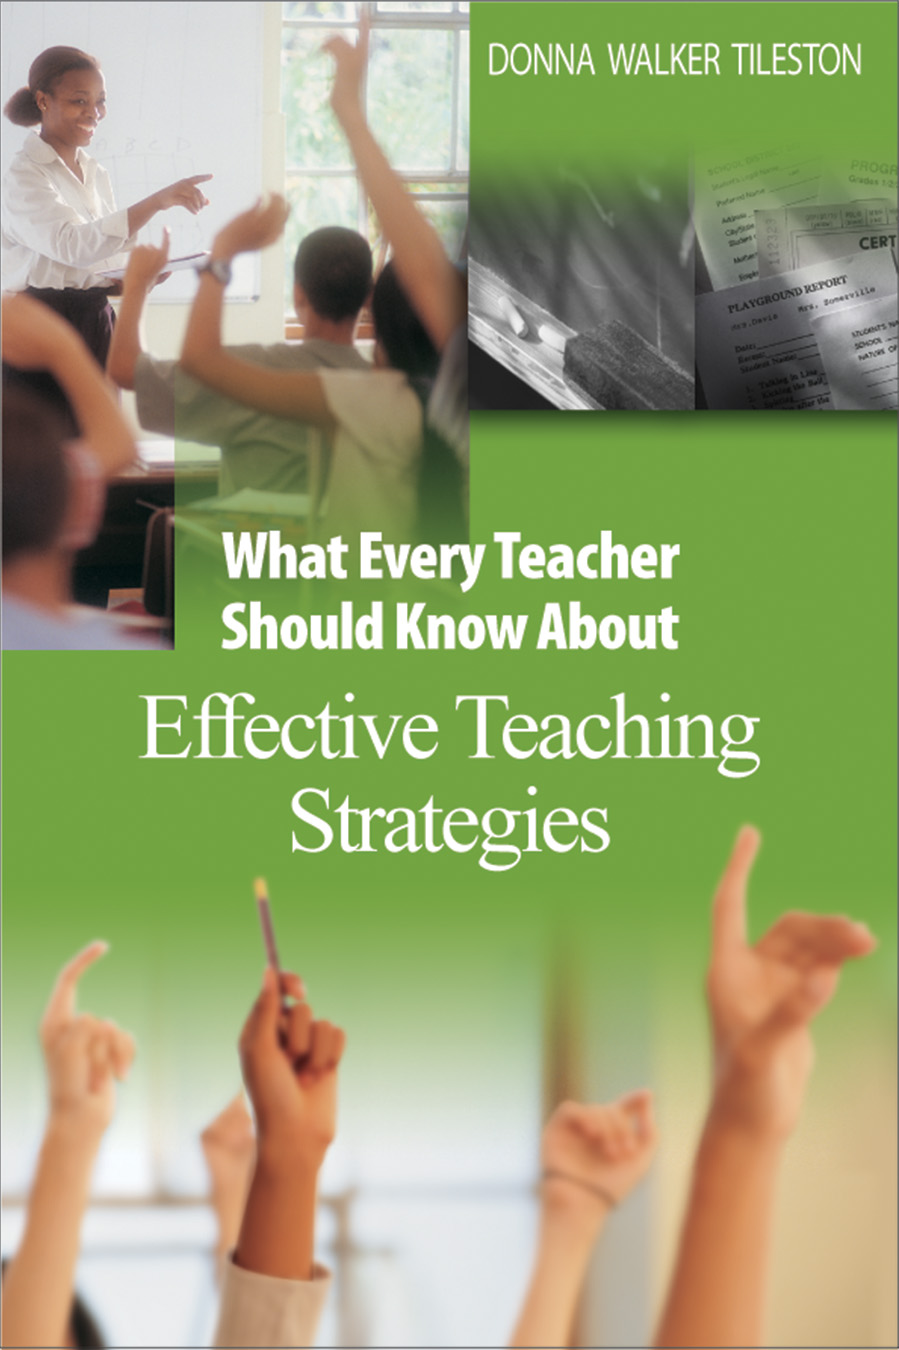 What Every Teacher Should Know About Effective Teaching Strategies